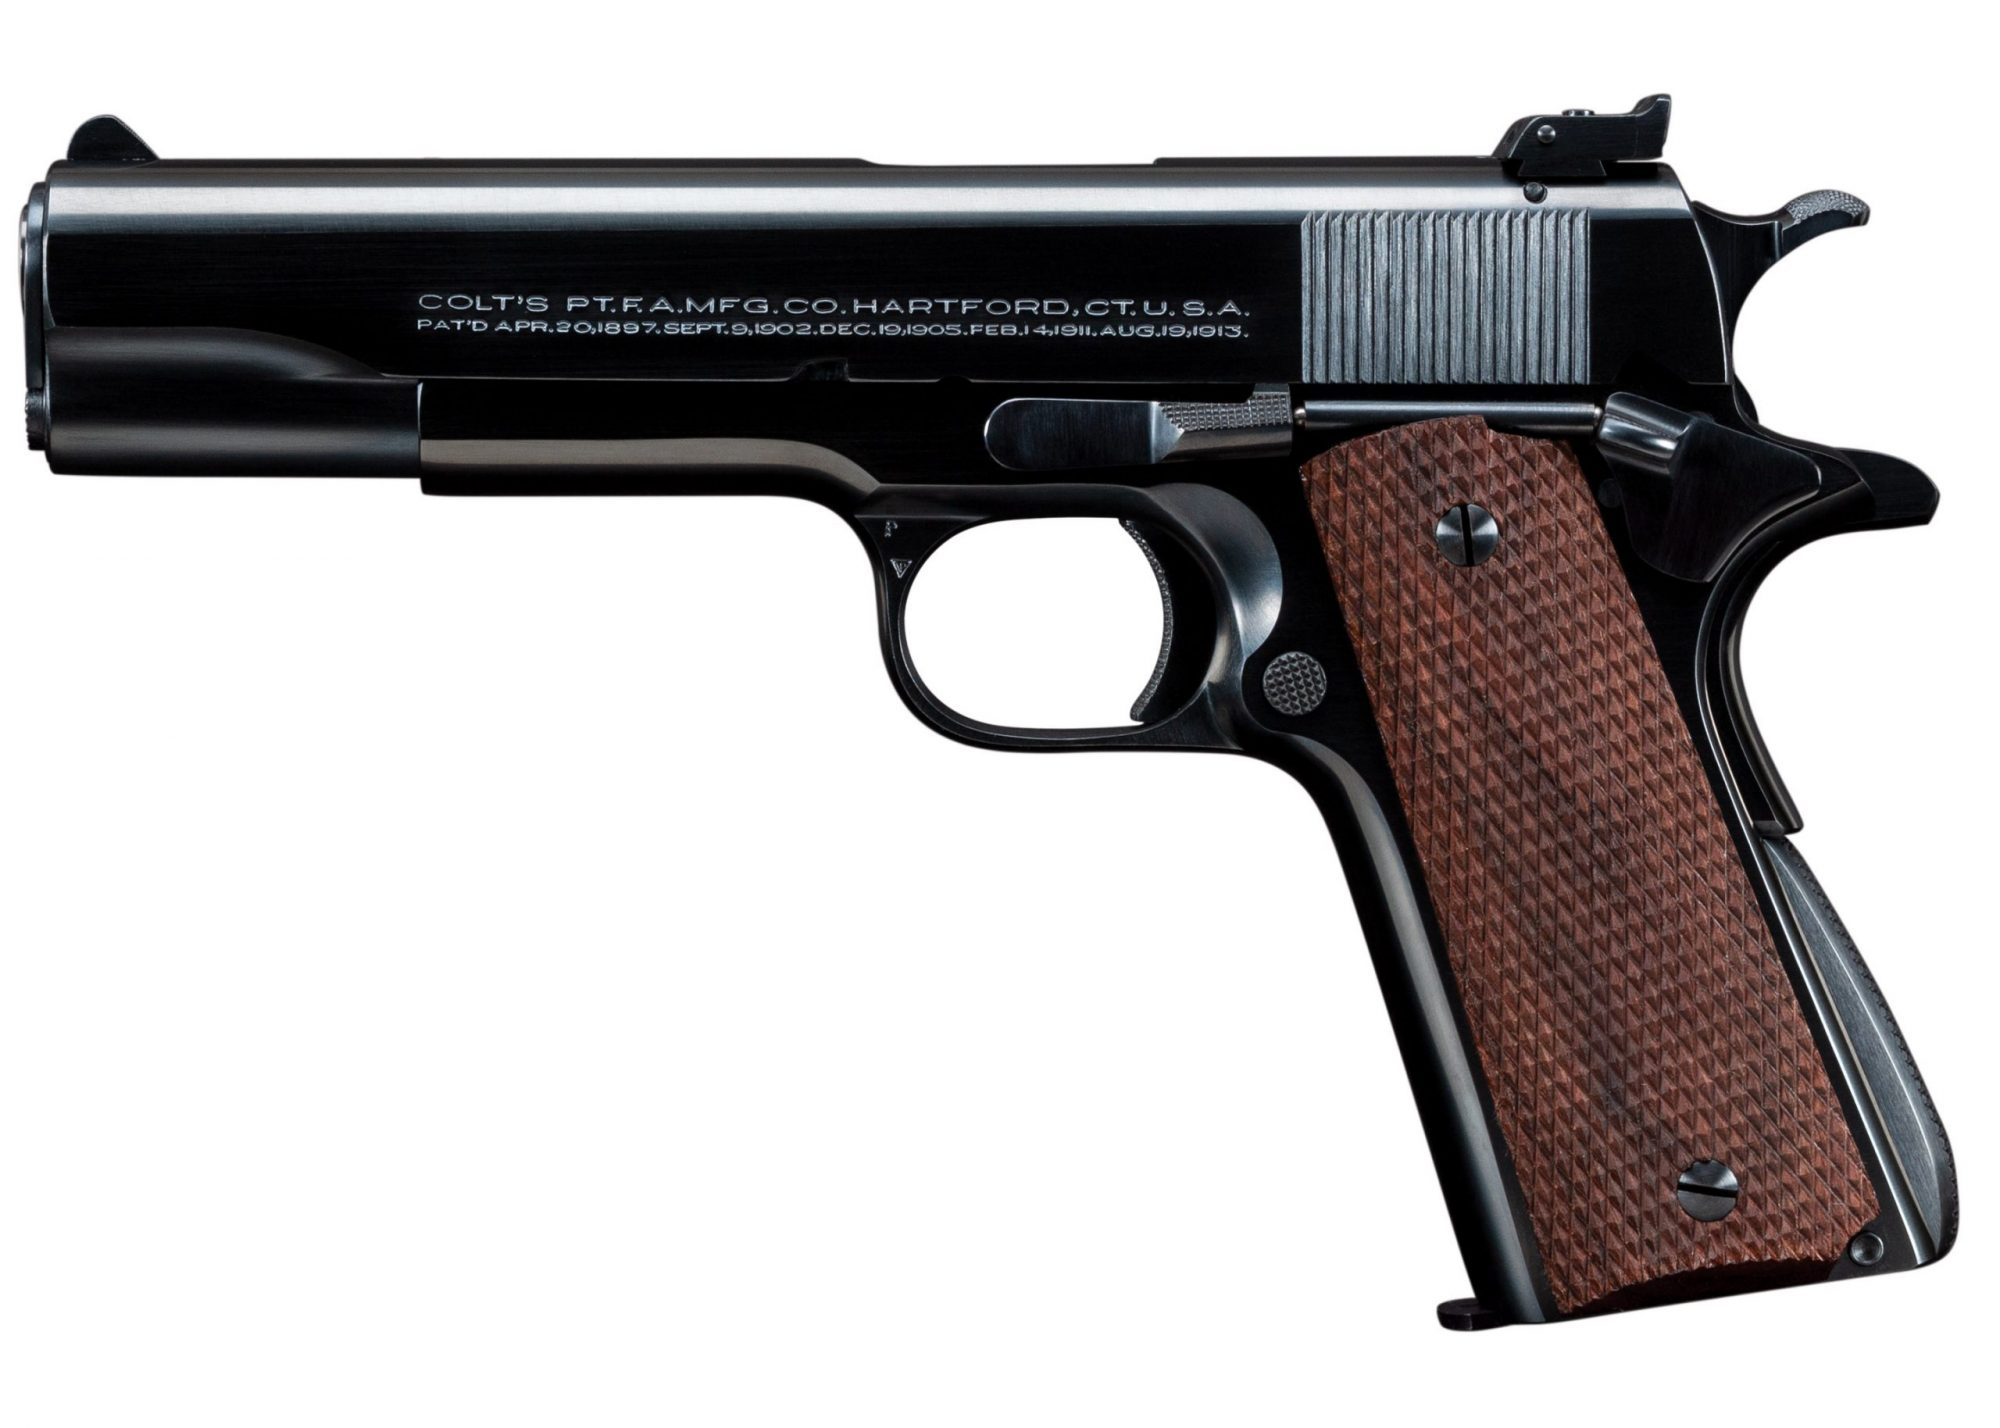 Photo of a Colt Super Match .38 Super Automatic pistol after restoration by Turnbull Restoration of Bloomfield, NY